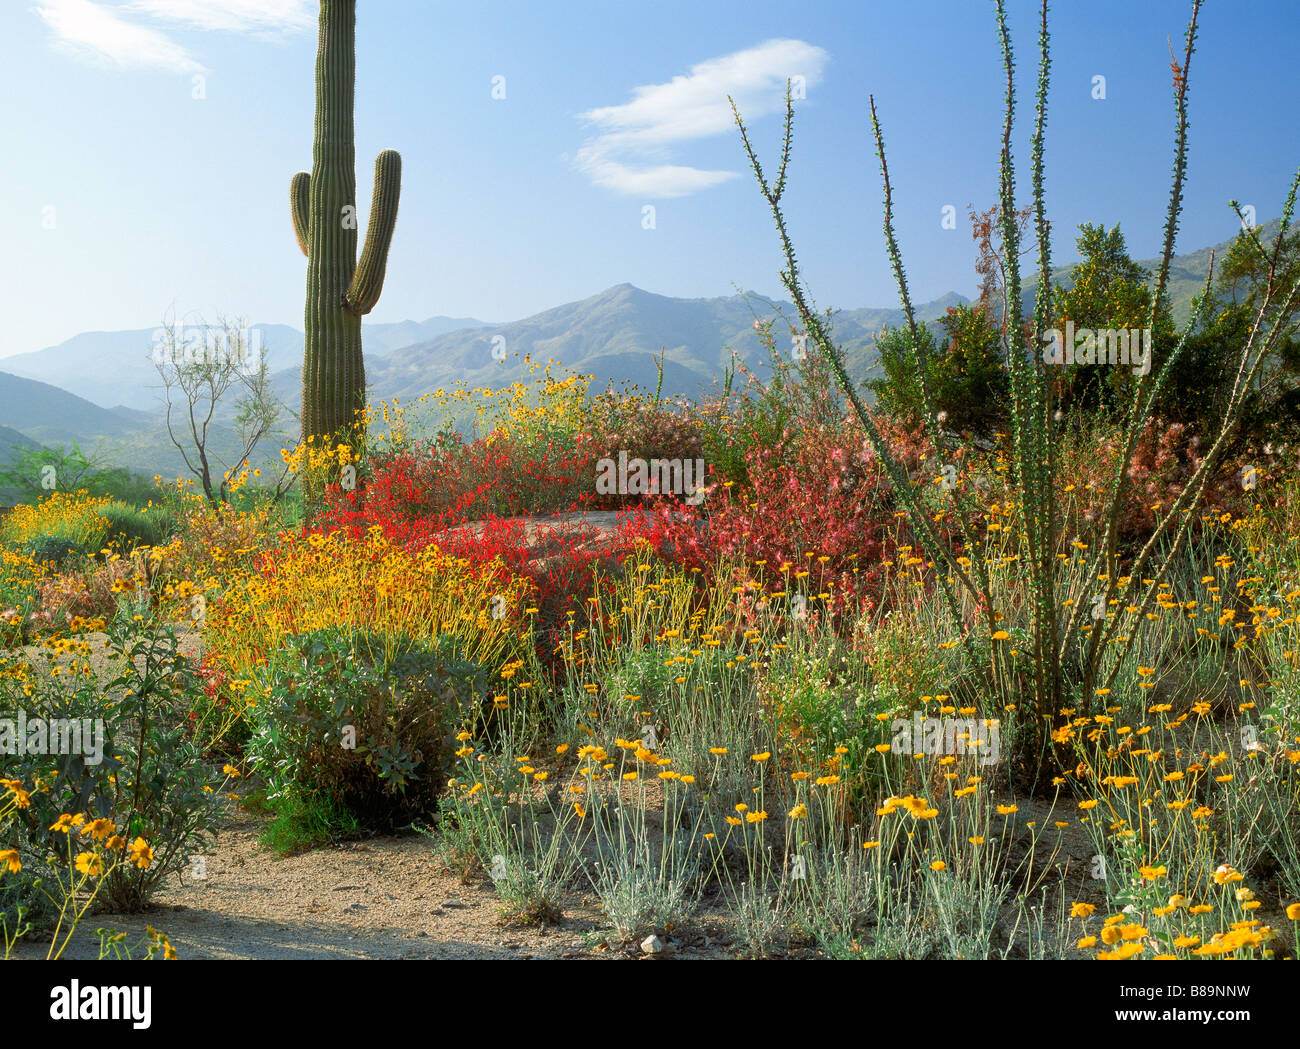 Saguaro cactus and spring flowers below mountains in california saguaro cactus and spring flowers below mountains in california desert scenic near palm springs mightylinksfo